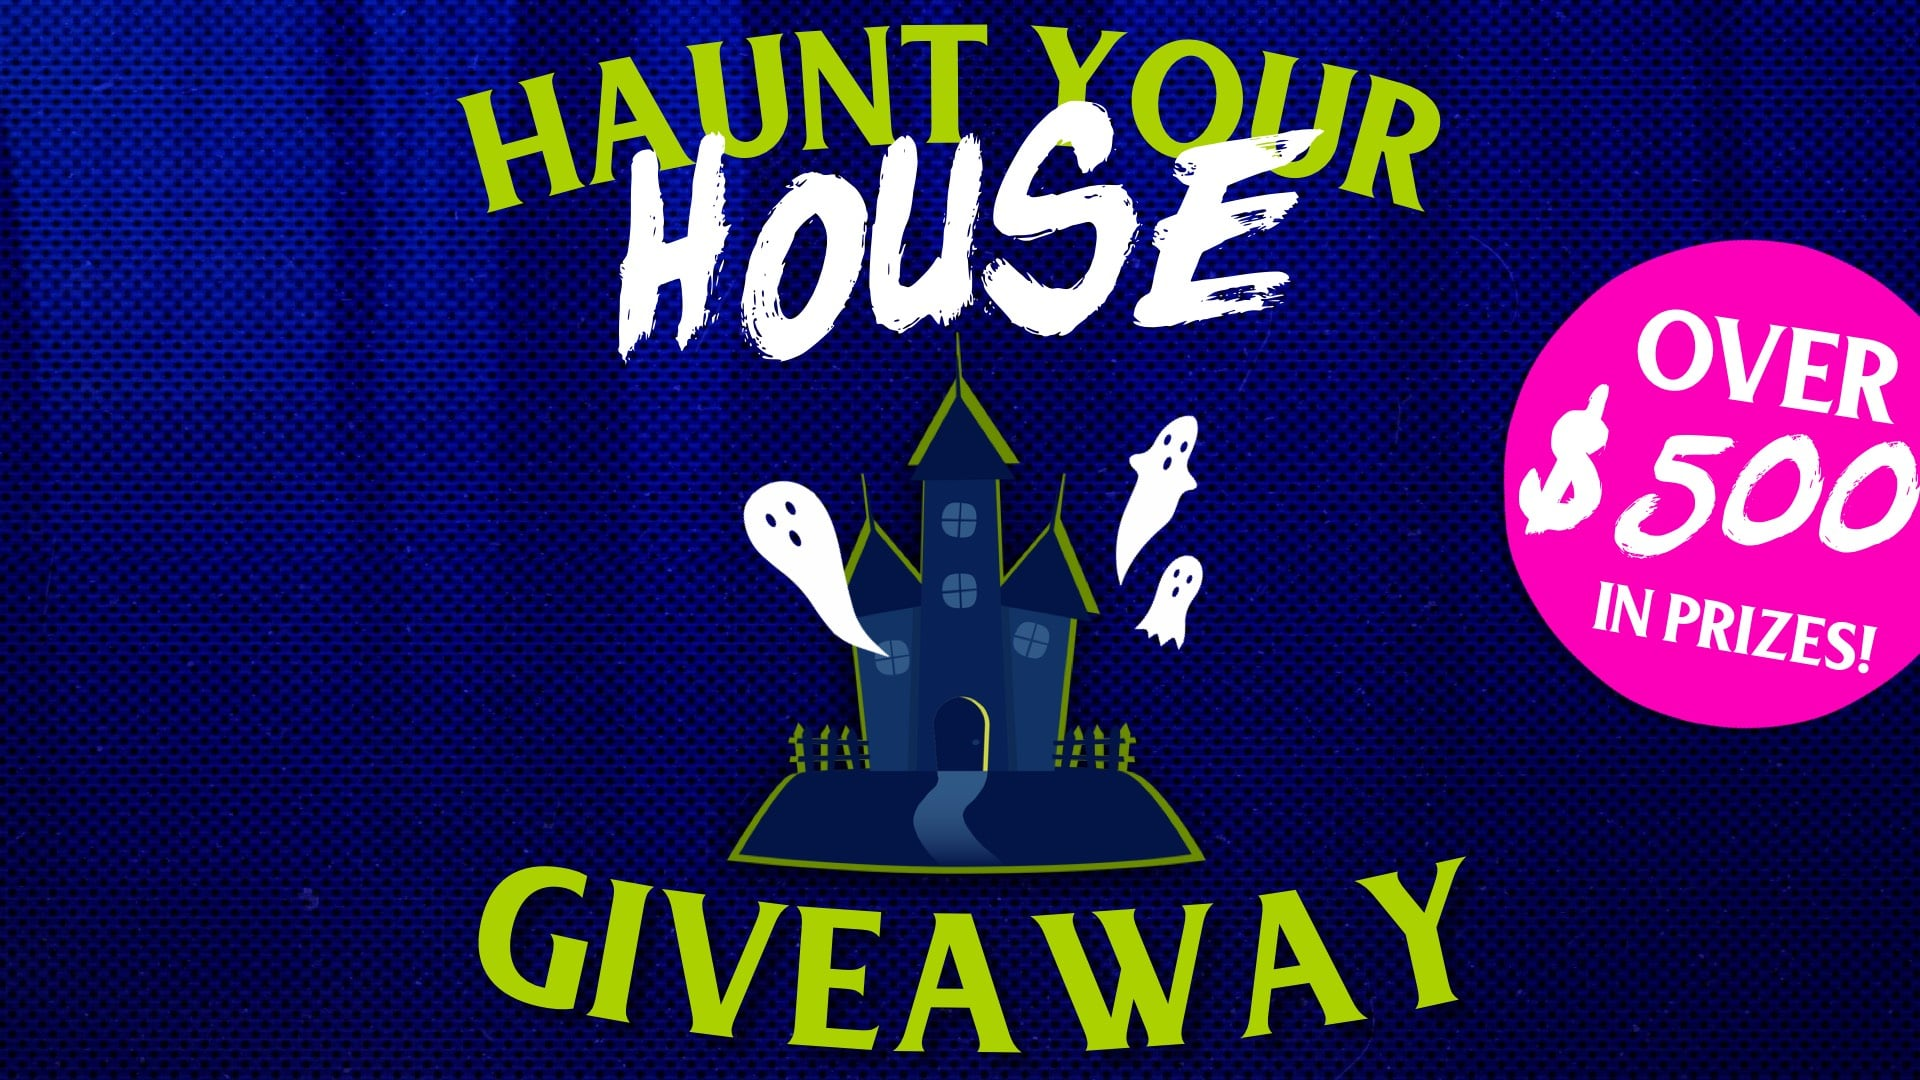 haunt your house giveaway